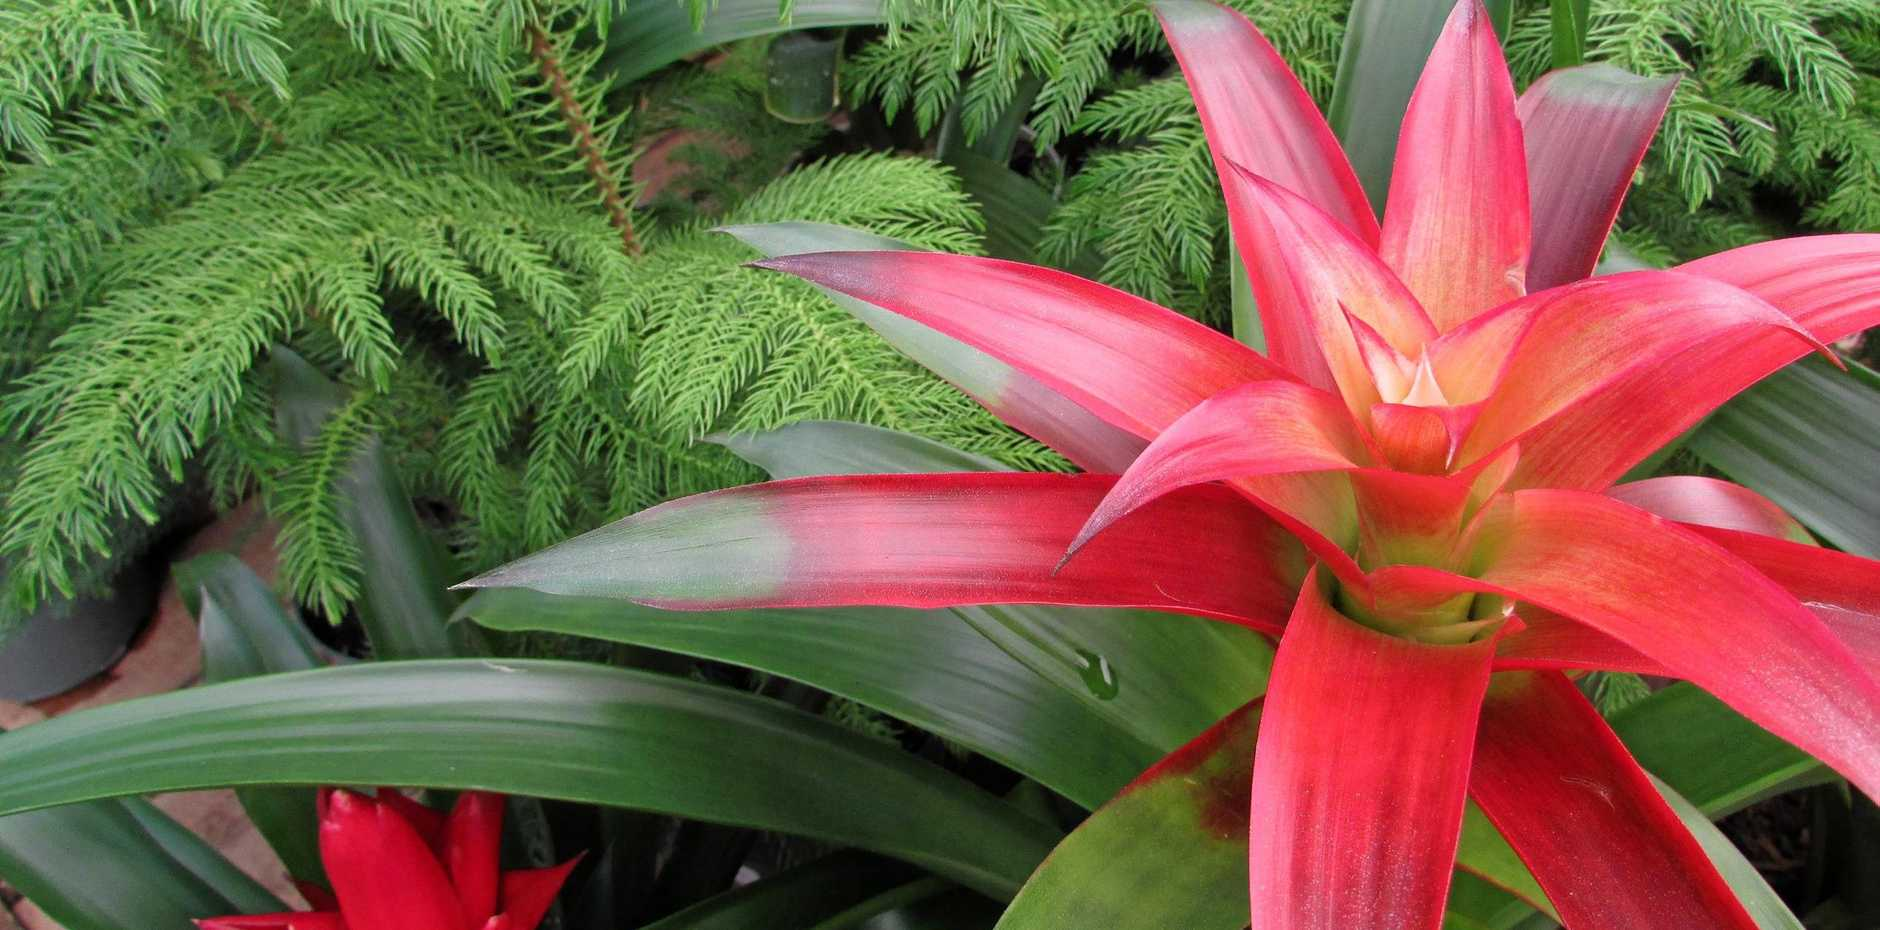 A blooming red bromeliad, pictured with Norfolk pine trees, would make a wonderful Christmas gift.